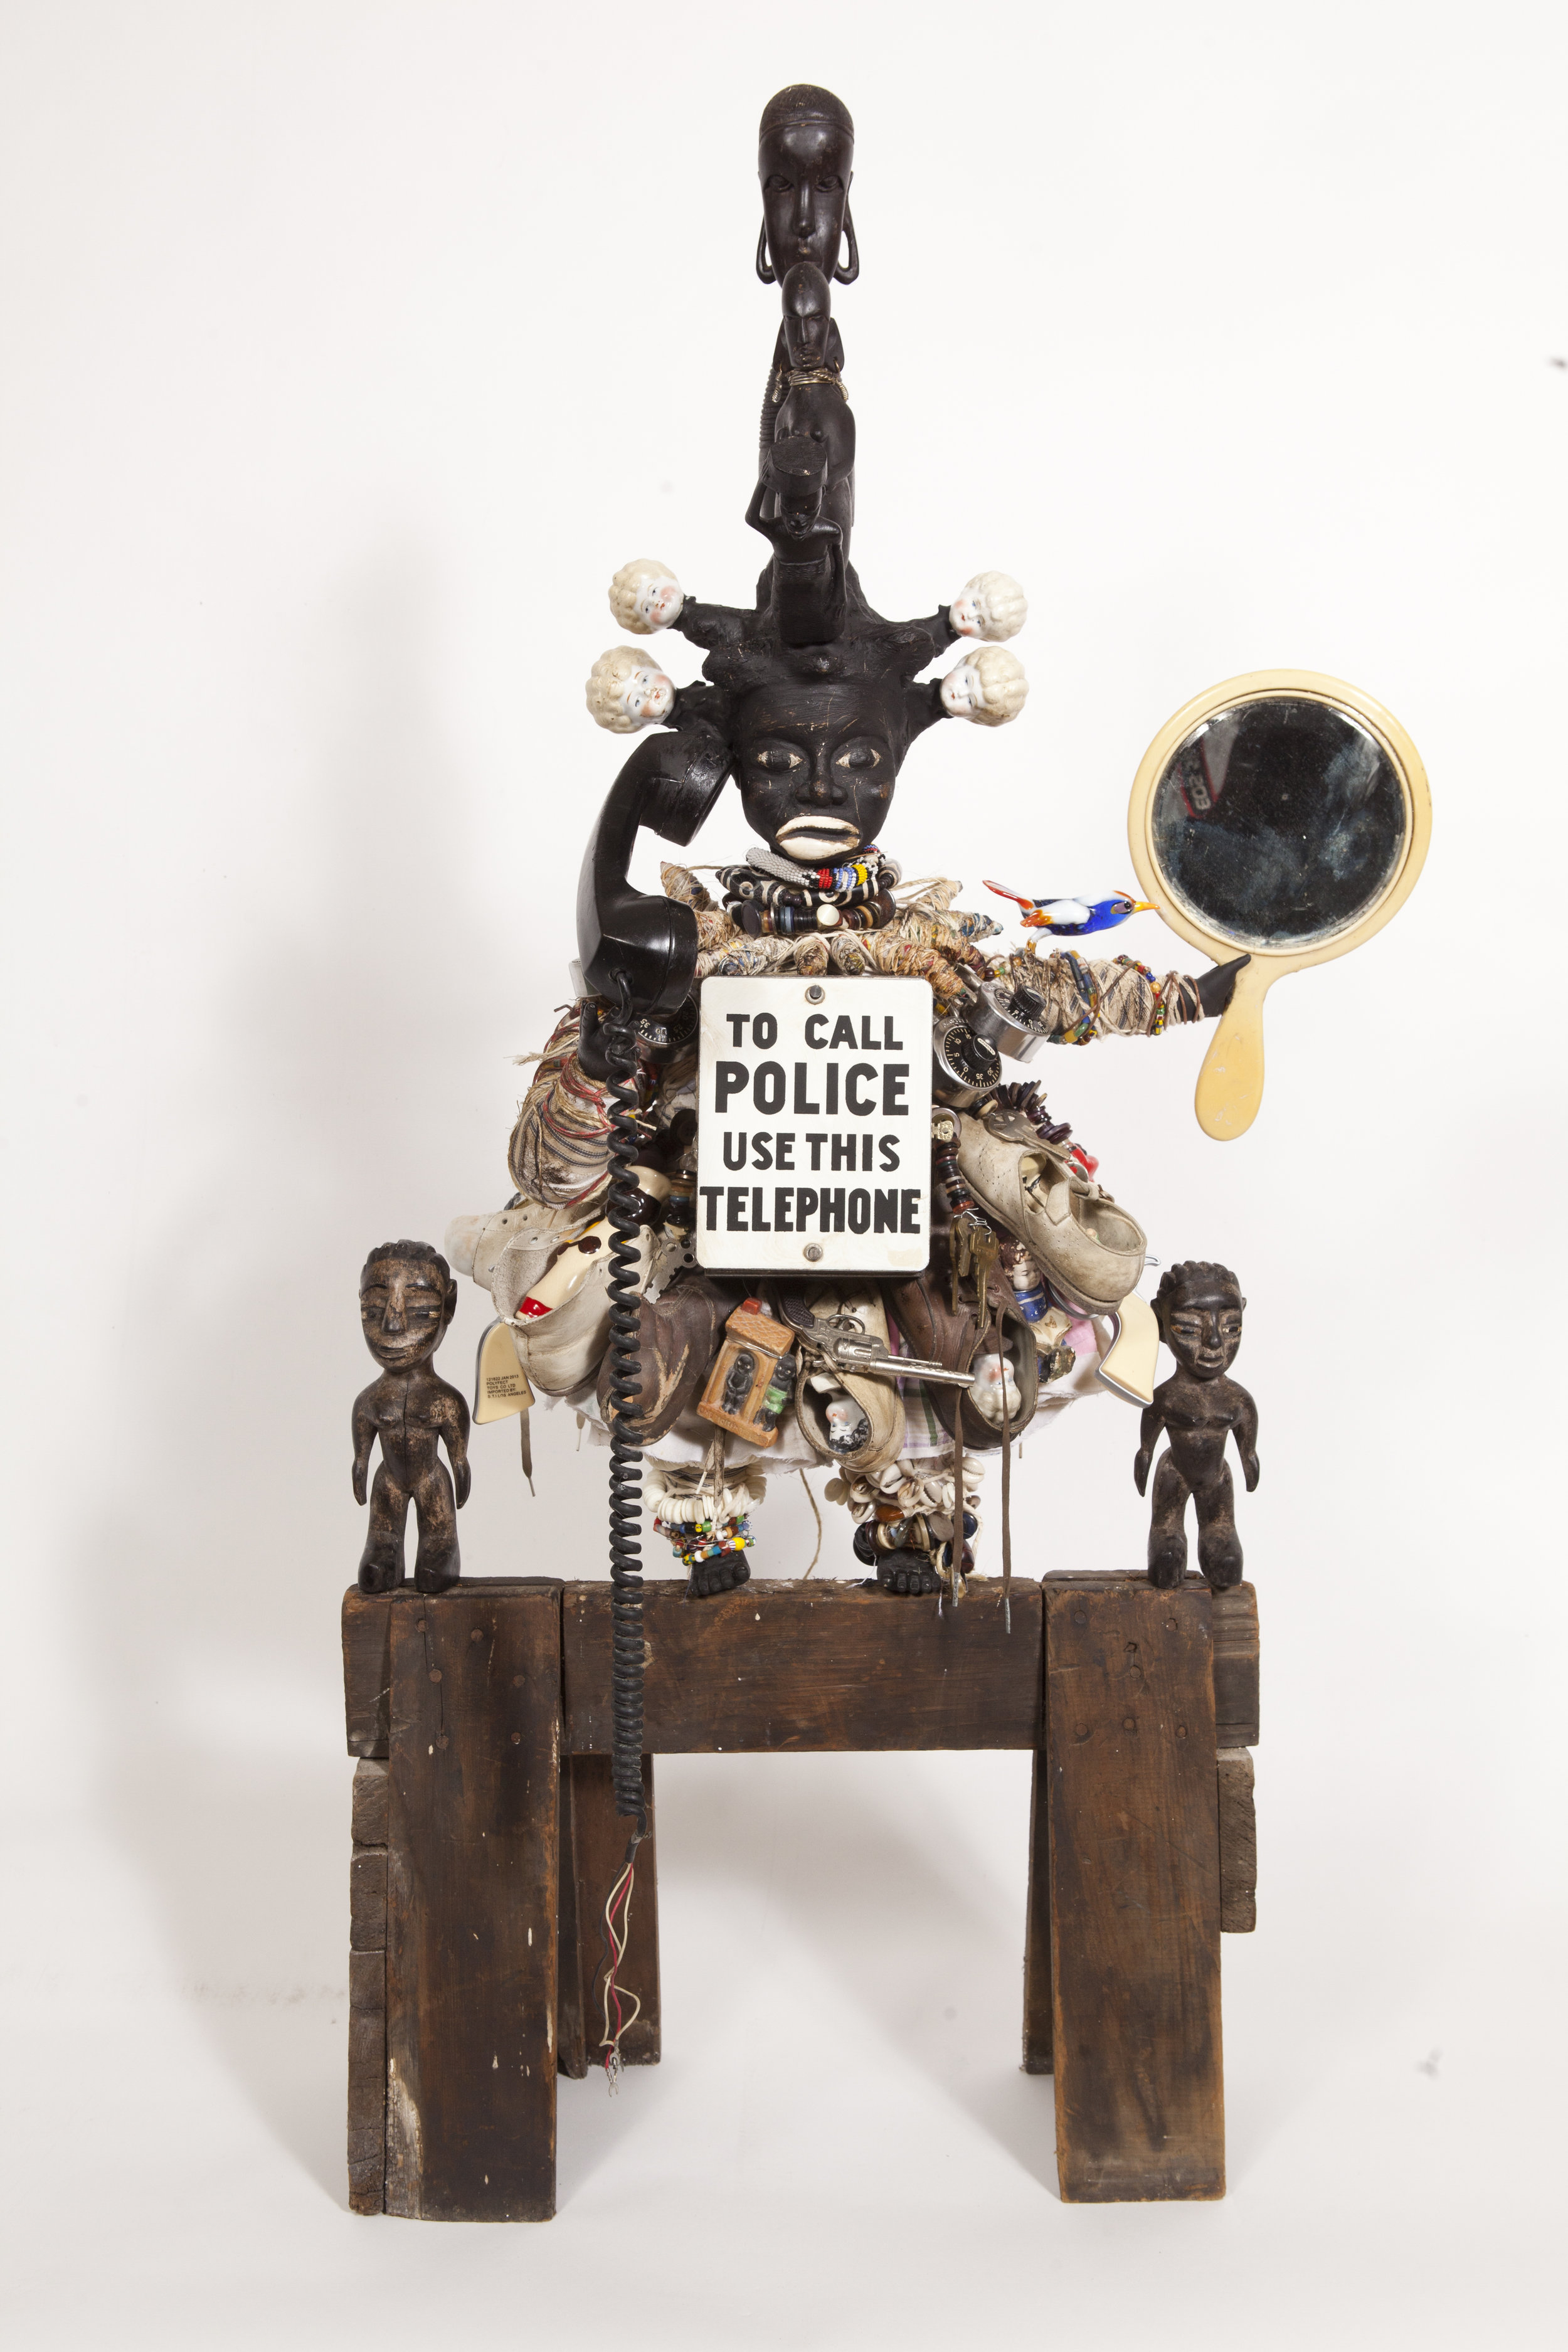 Reality Check: To Call the Police Use this Phone, 2013, Mixed media assemblage 46 x 24 x 14 inches, © Vanessa German, courtesy of the artist and Pavel Zoubok Gallery, New York.